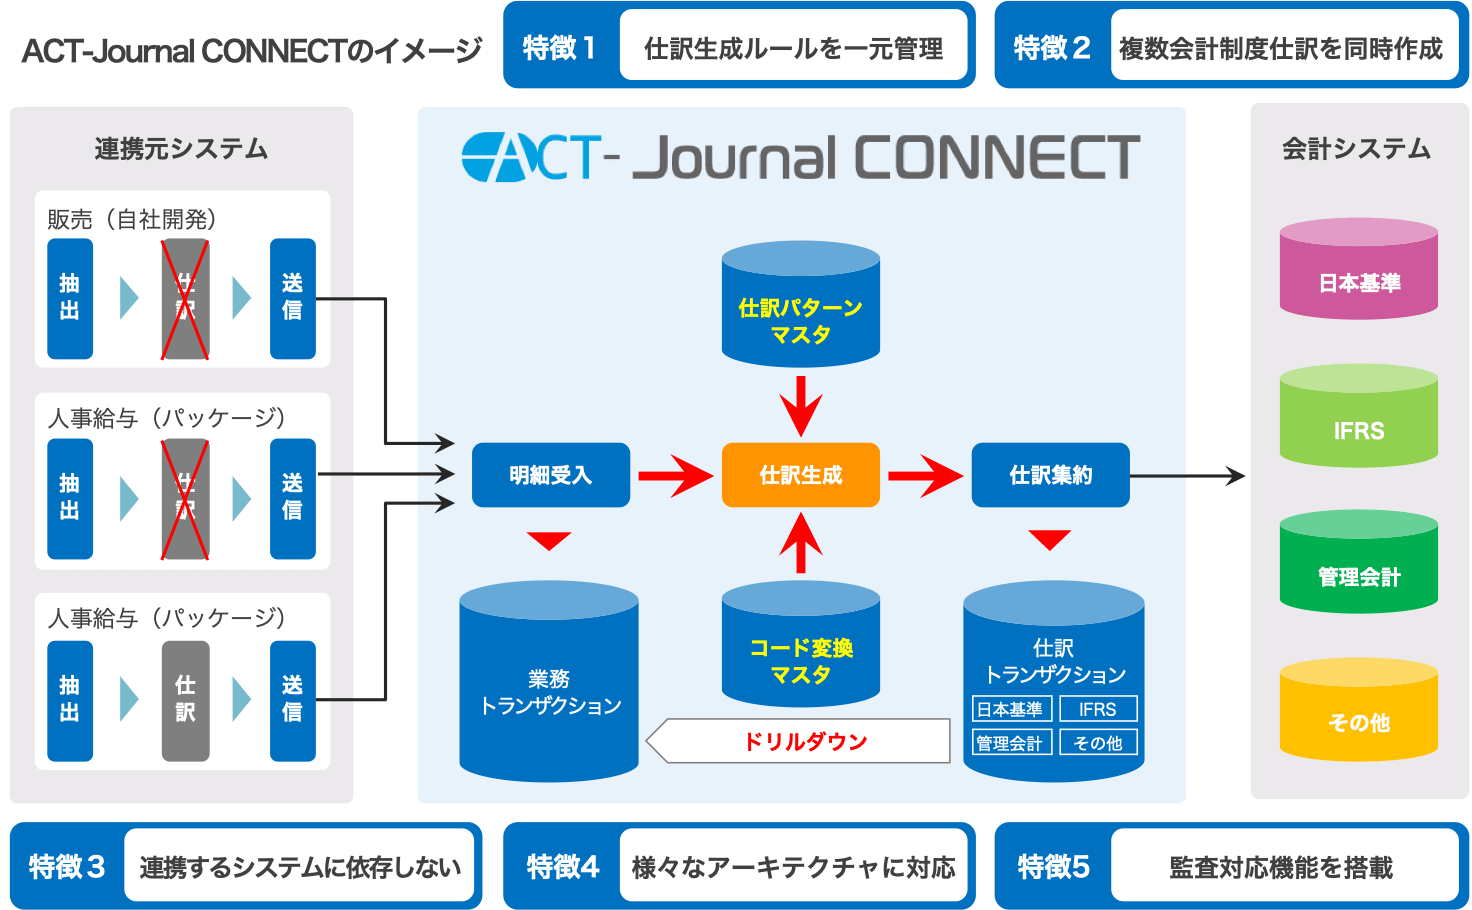 「ACT-Journal CONNECT」の特徴